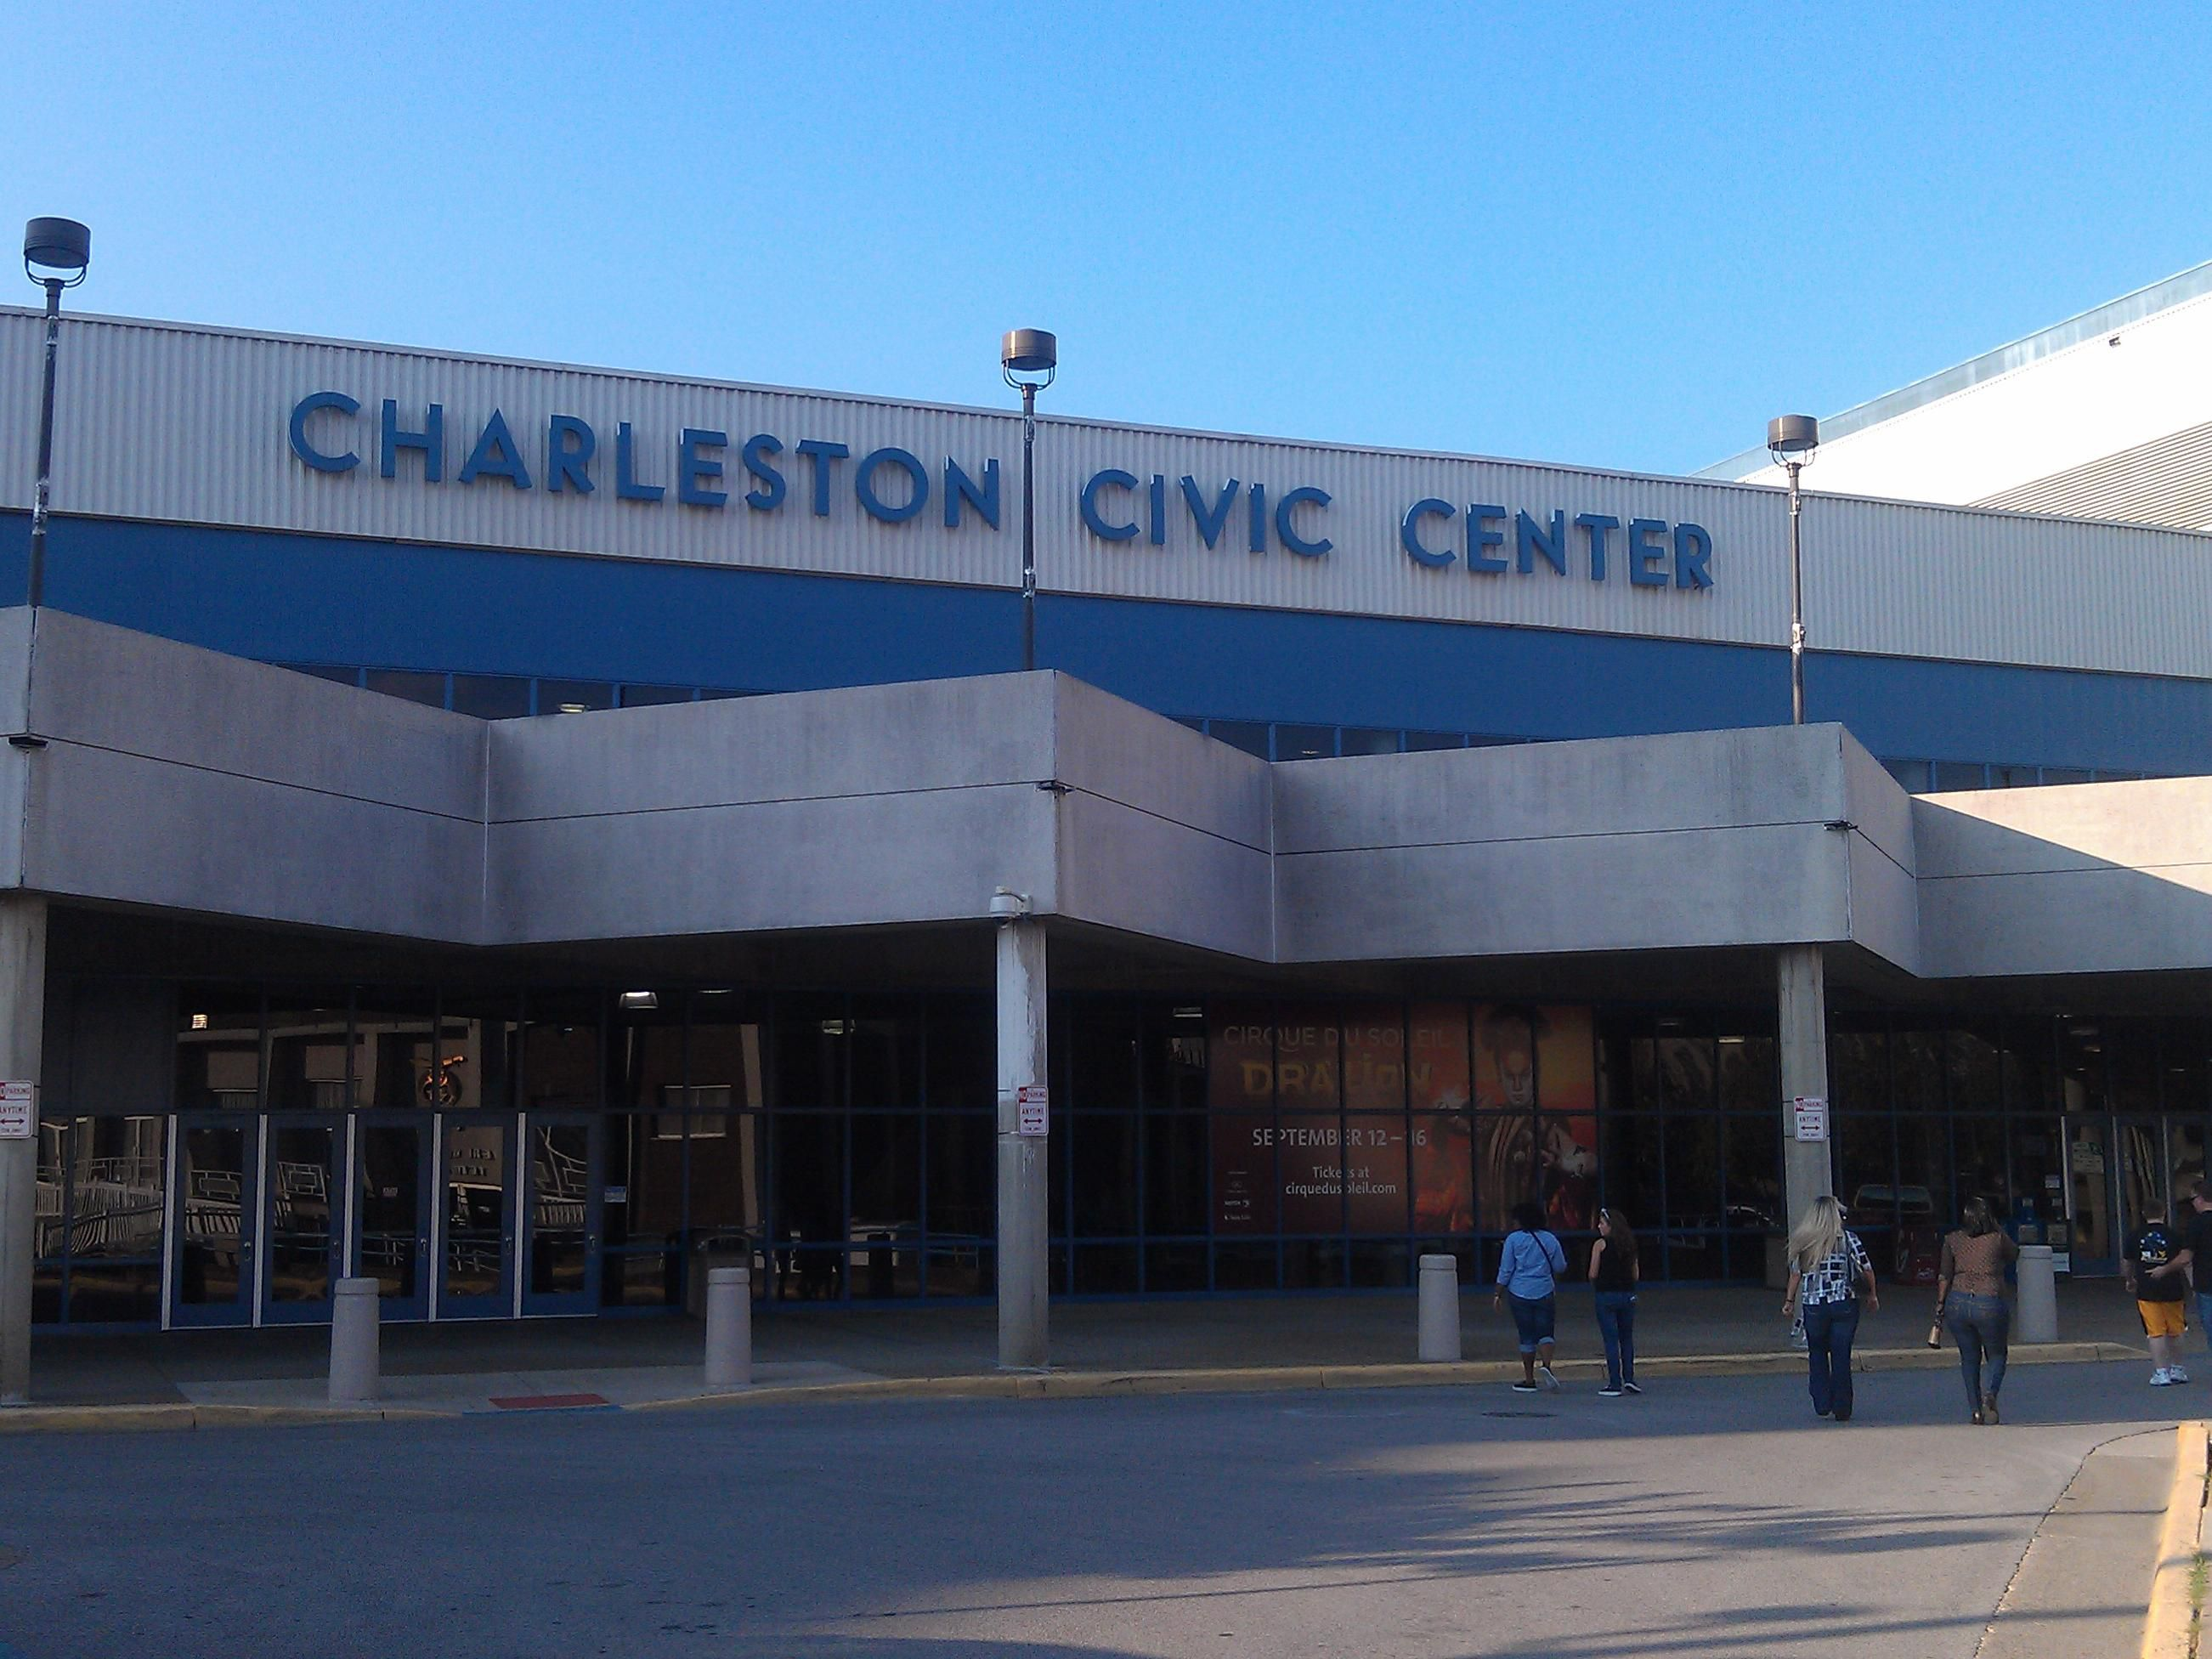 Charleston Civic Center